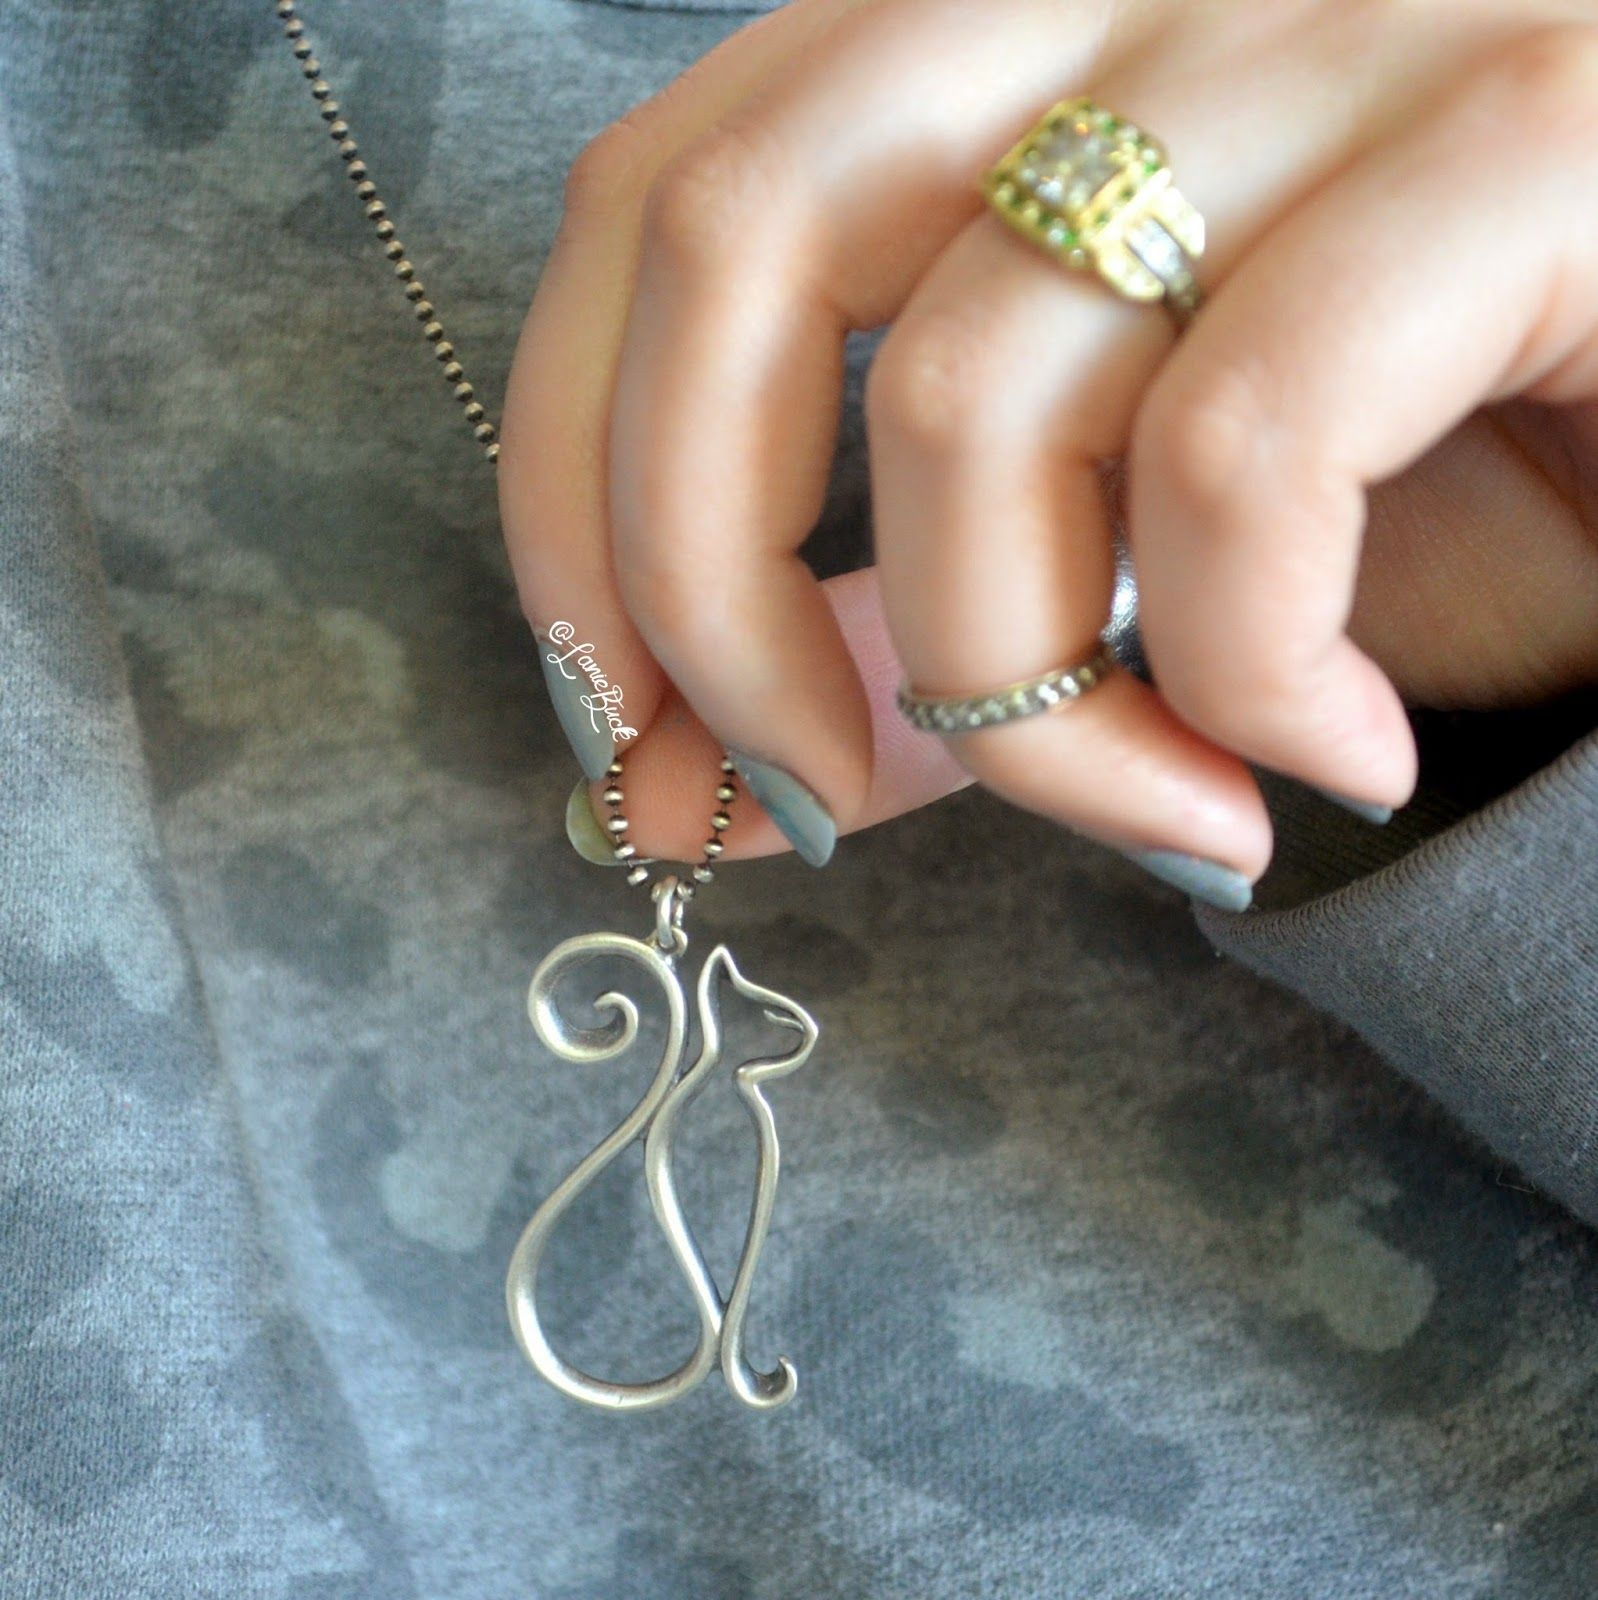 21+ The last line jewelry review viral